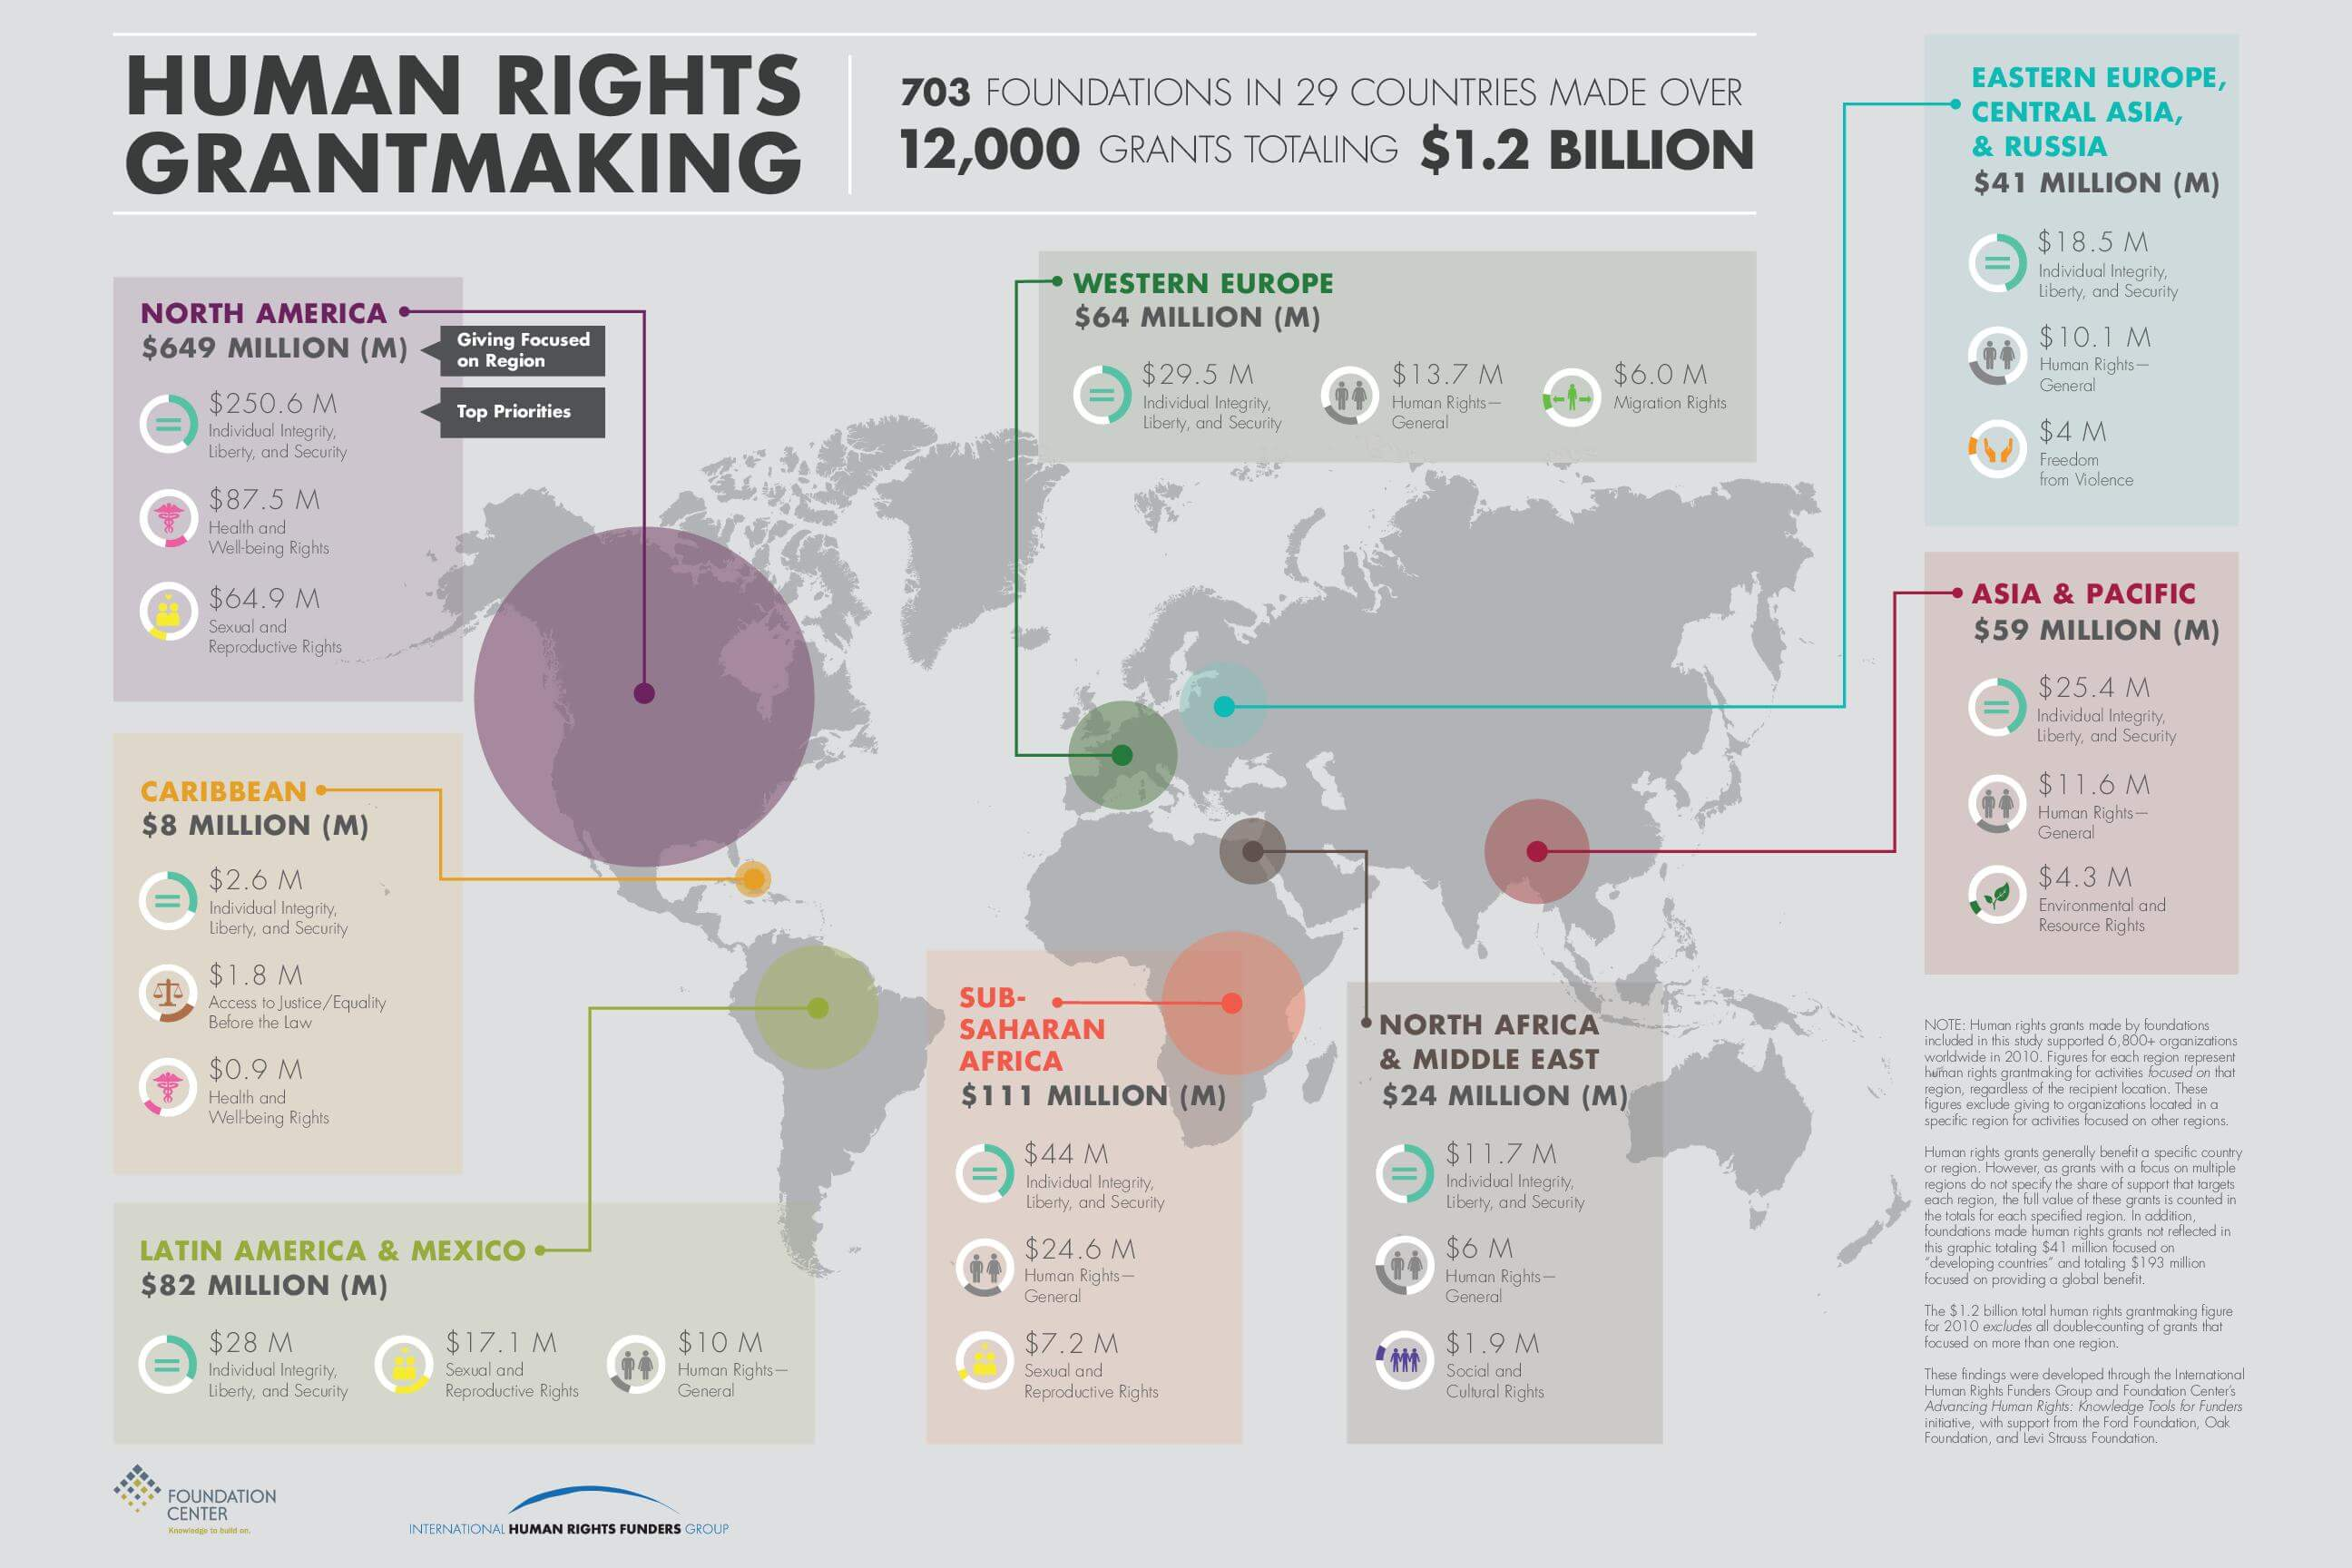 Advancing Human Rights: The State of Global Foundation Grantmaking - Infographic